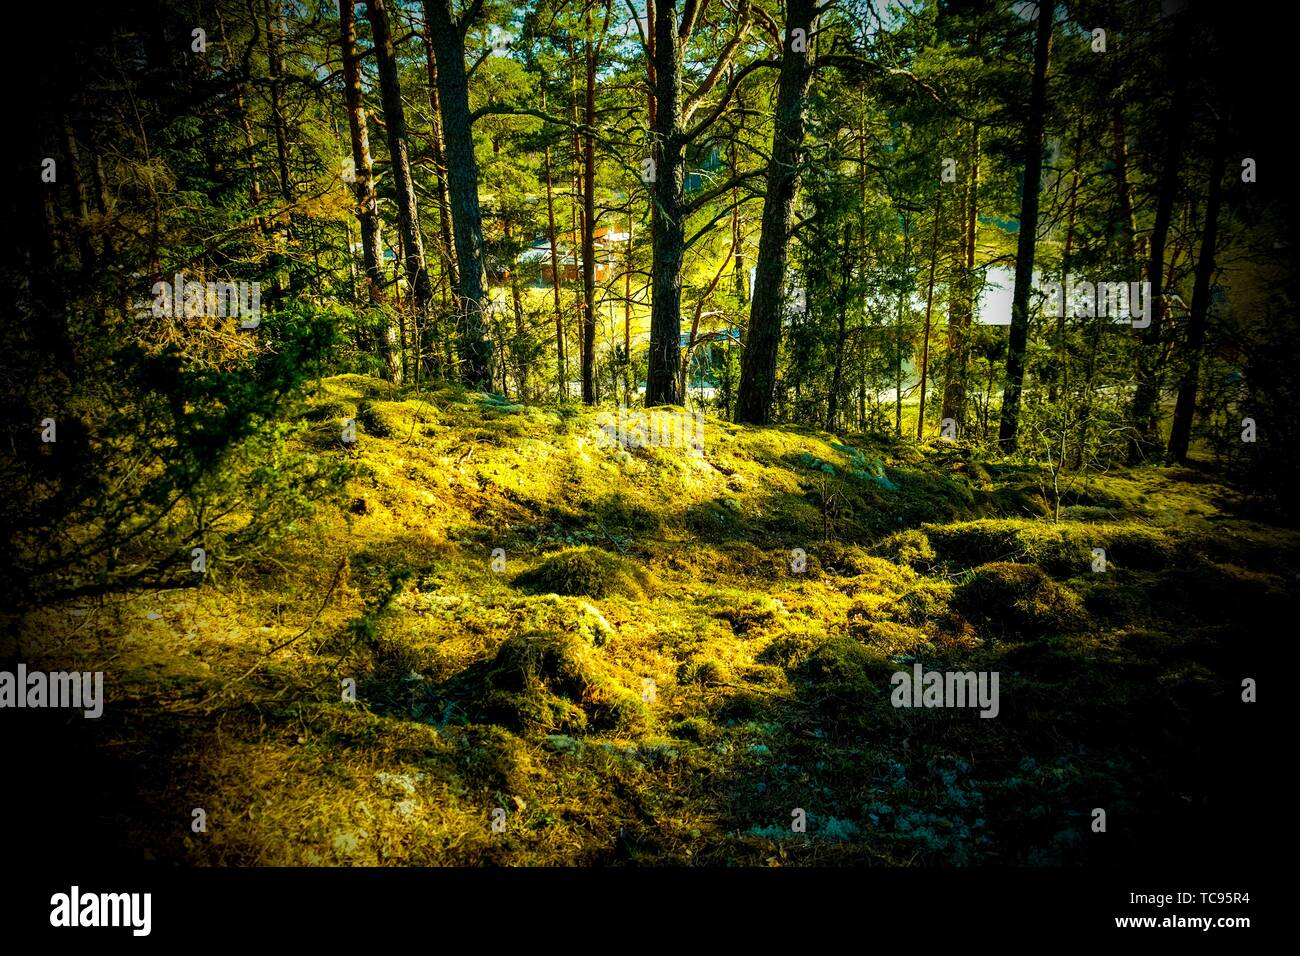 Forests of Sweden. - Stock Image